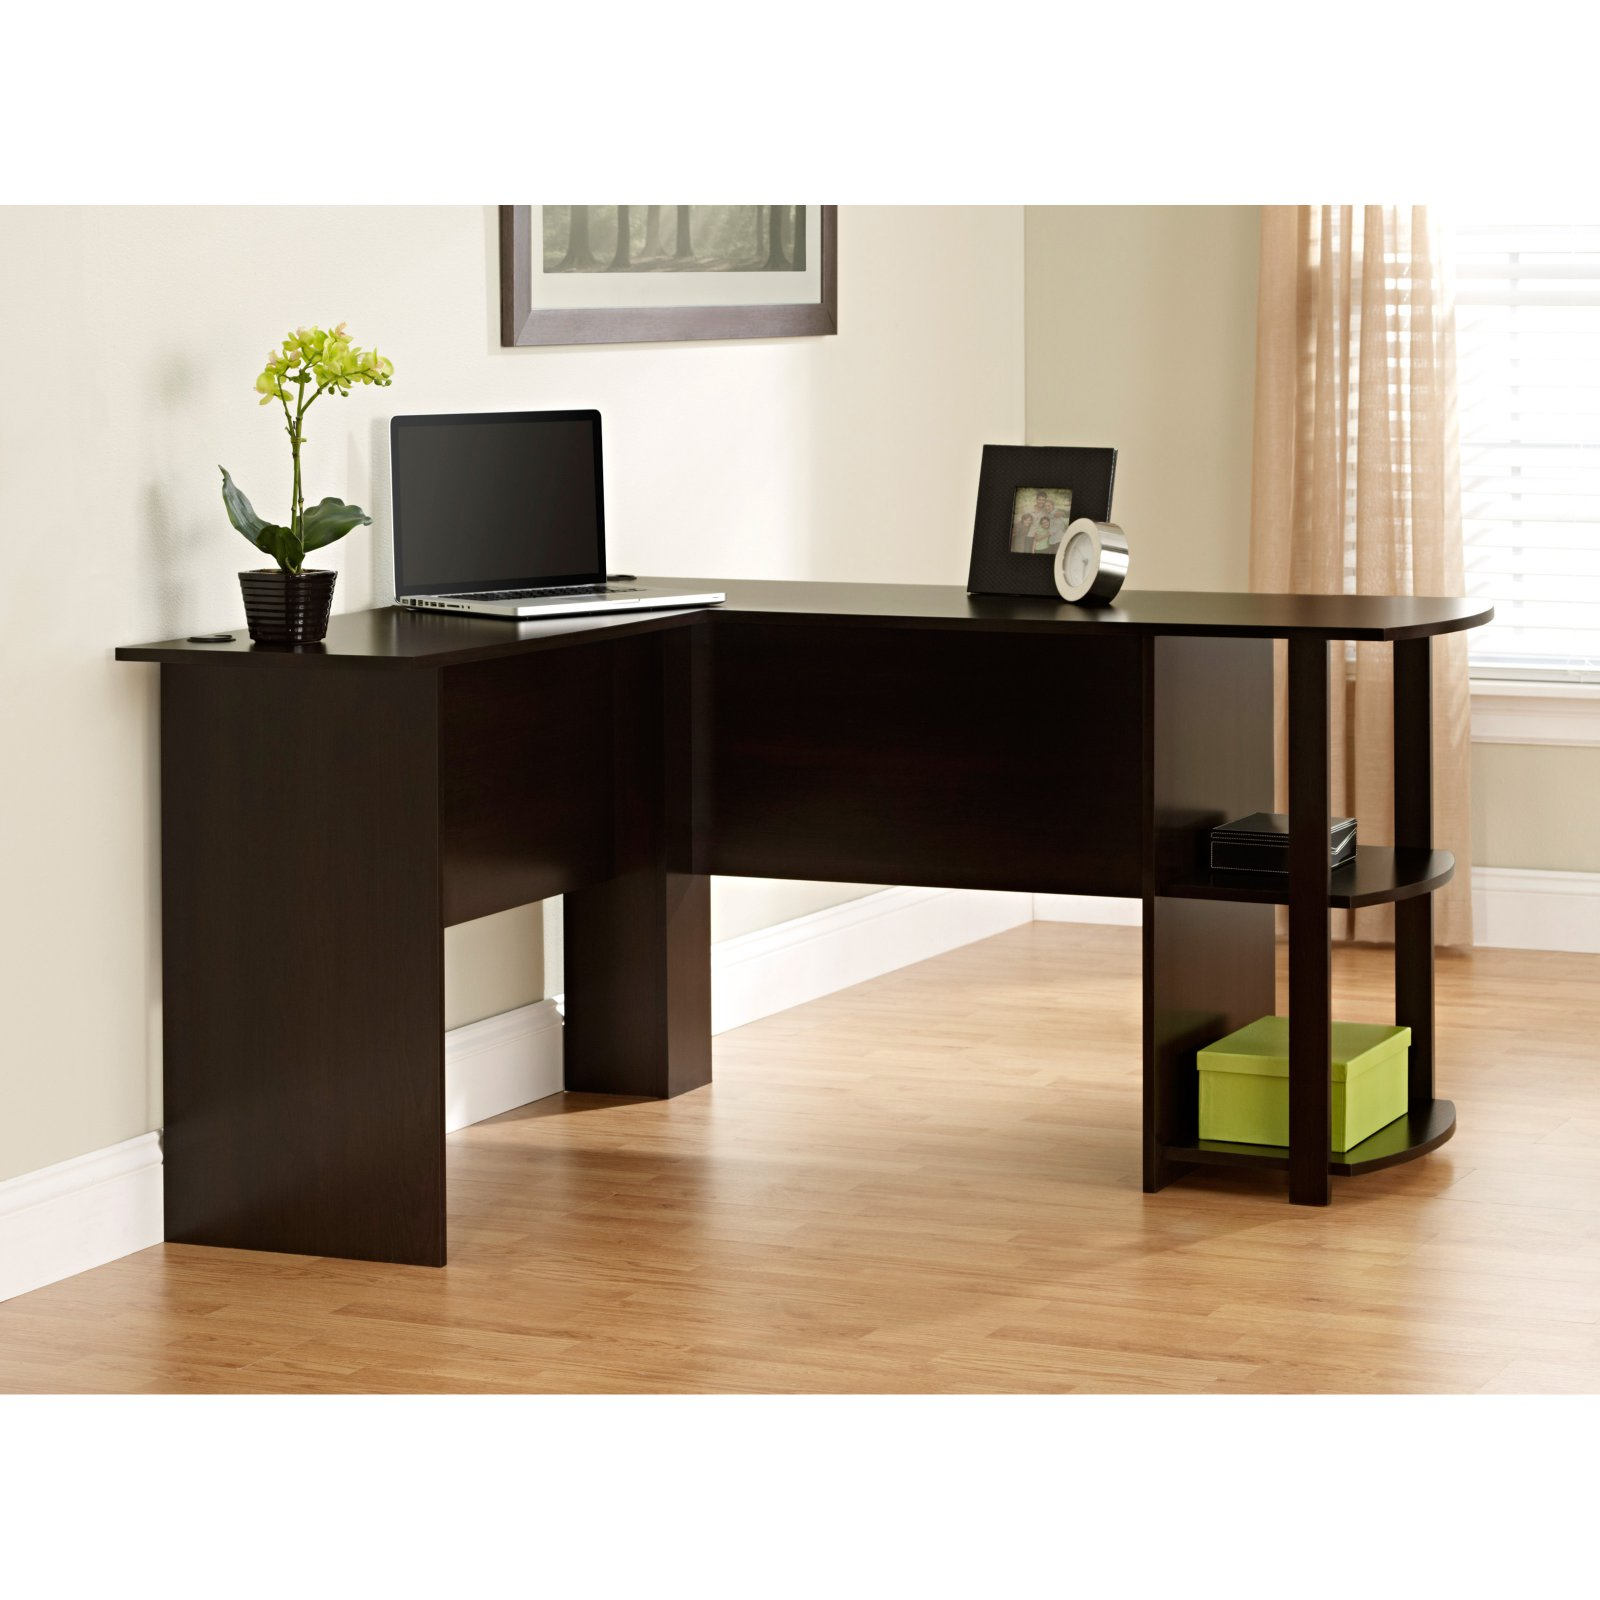 Manufactur standard Commercial Bathroom Vanities - Office Desk One Seater Table Wooden Computer DeskTable  – Joysource